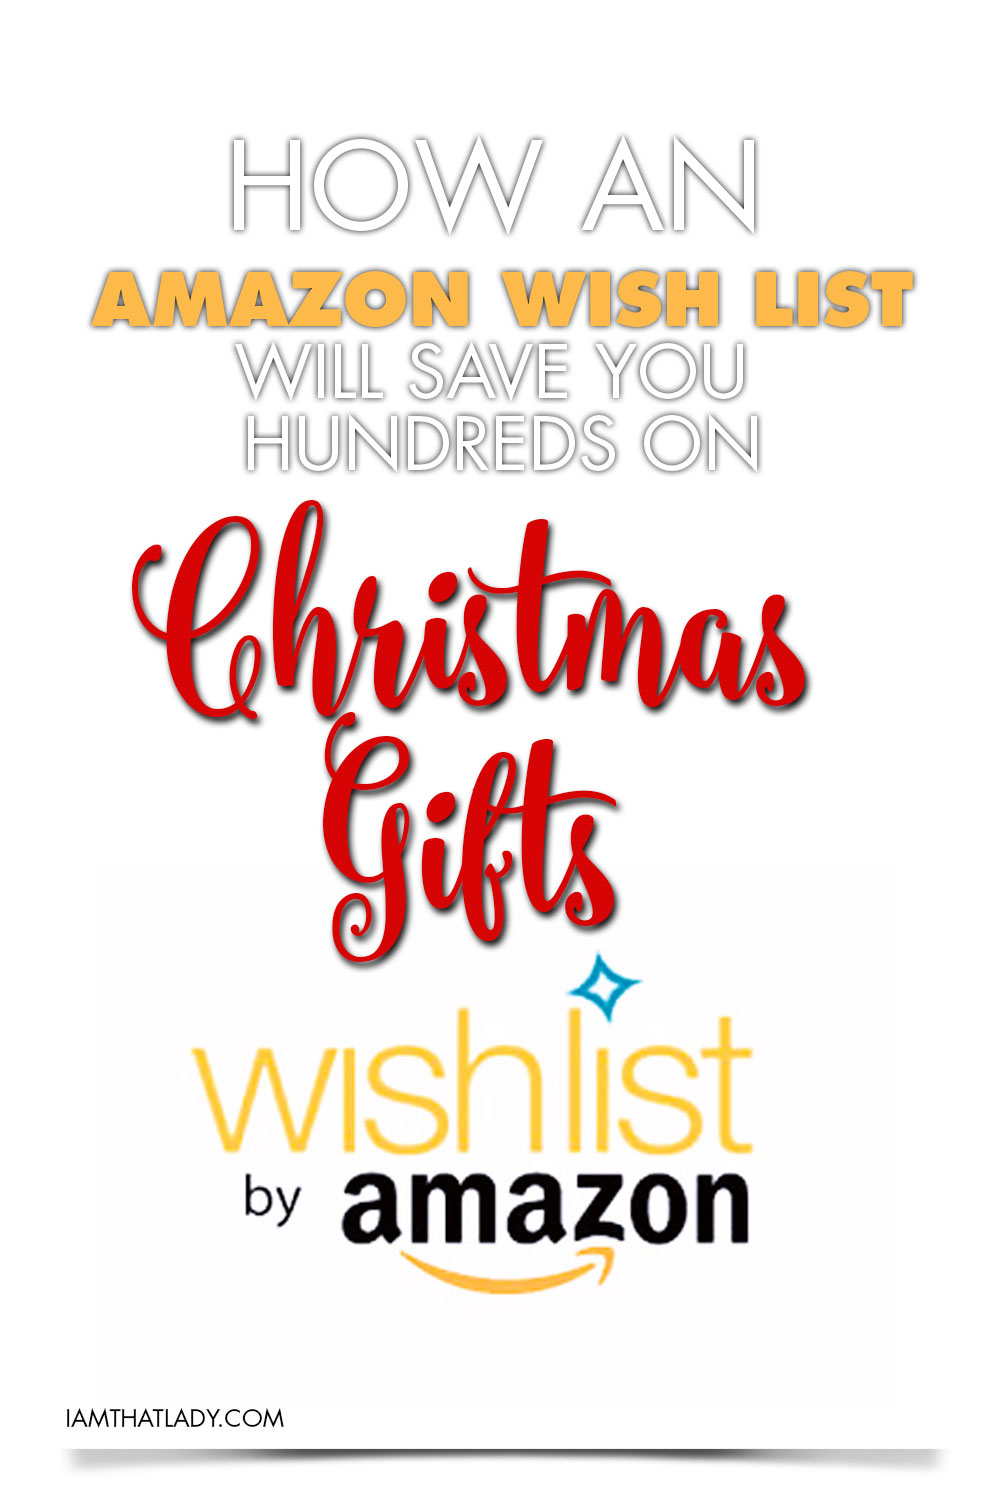 how an amazon wish list will save you hundreds on